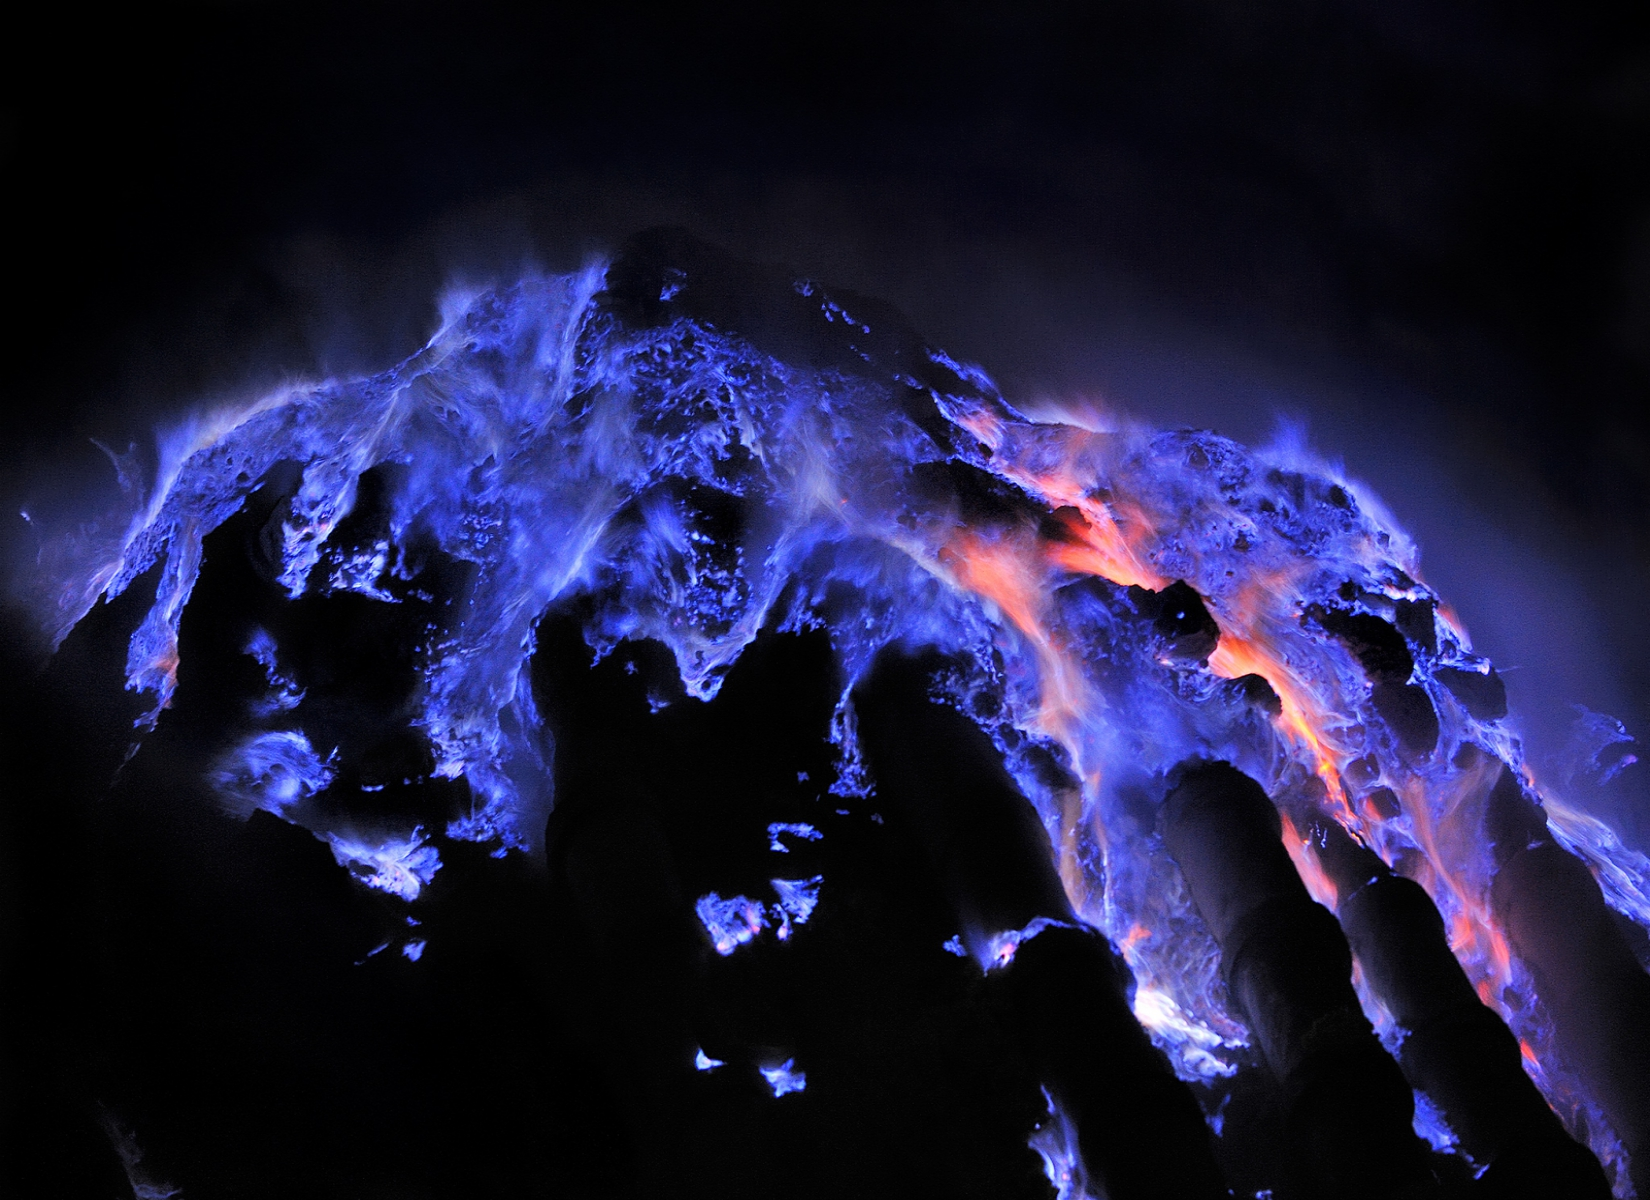 Api biru Ijen. Image by news.nationalgeographic.com